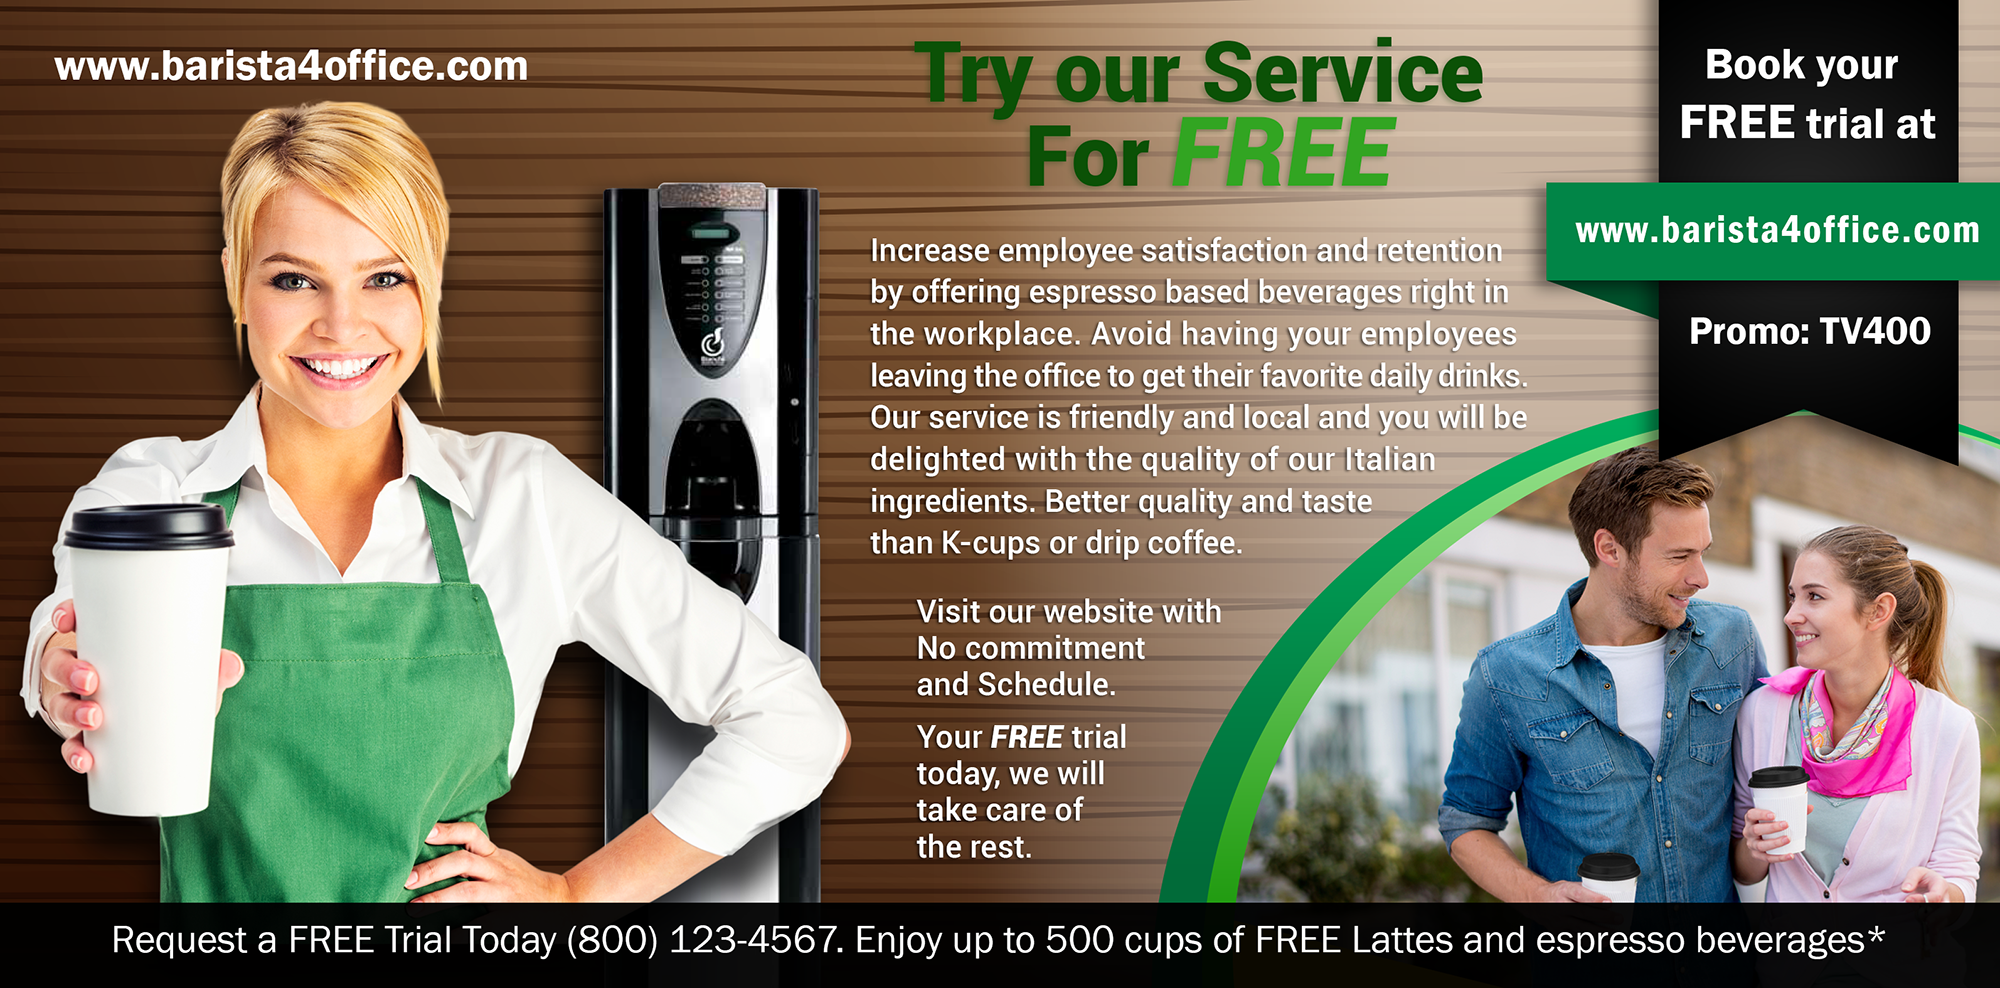 Create persuasive flyer for new gourmet coffee service business